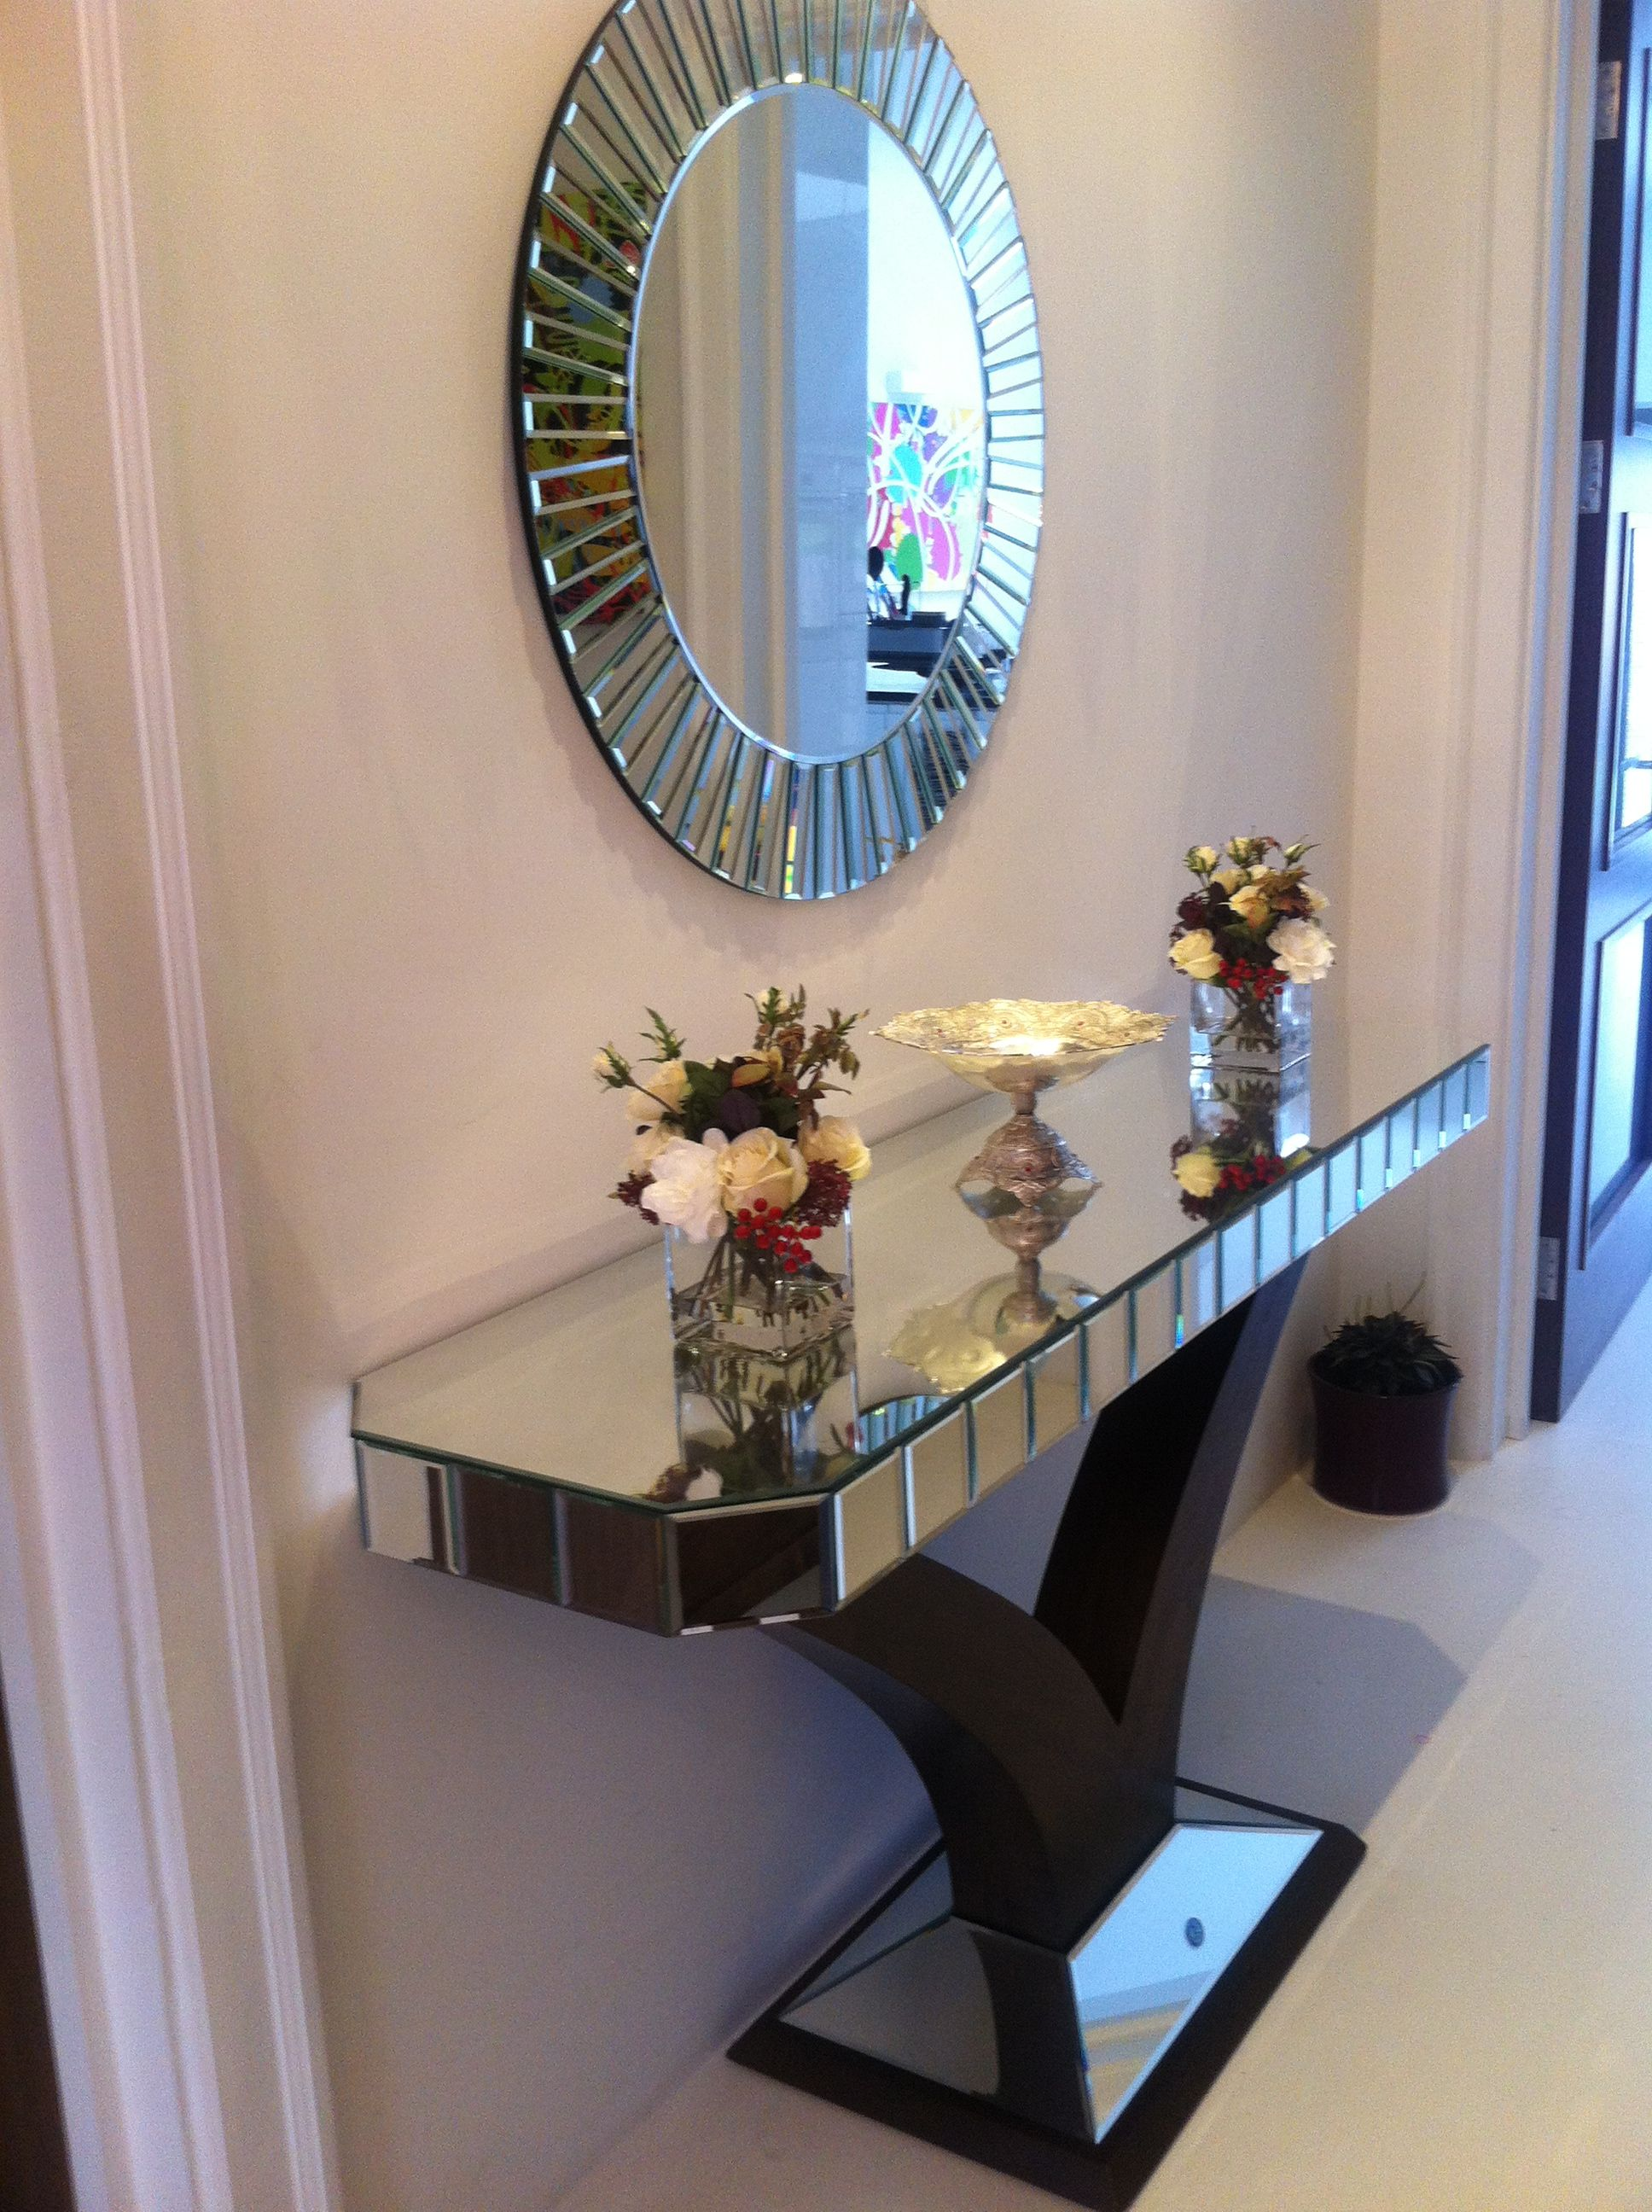 Merveilleux Our Best Selling Quartz Console And Mirror Set Look Stunning In Ms  Hussainu0027s Hallway.